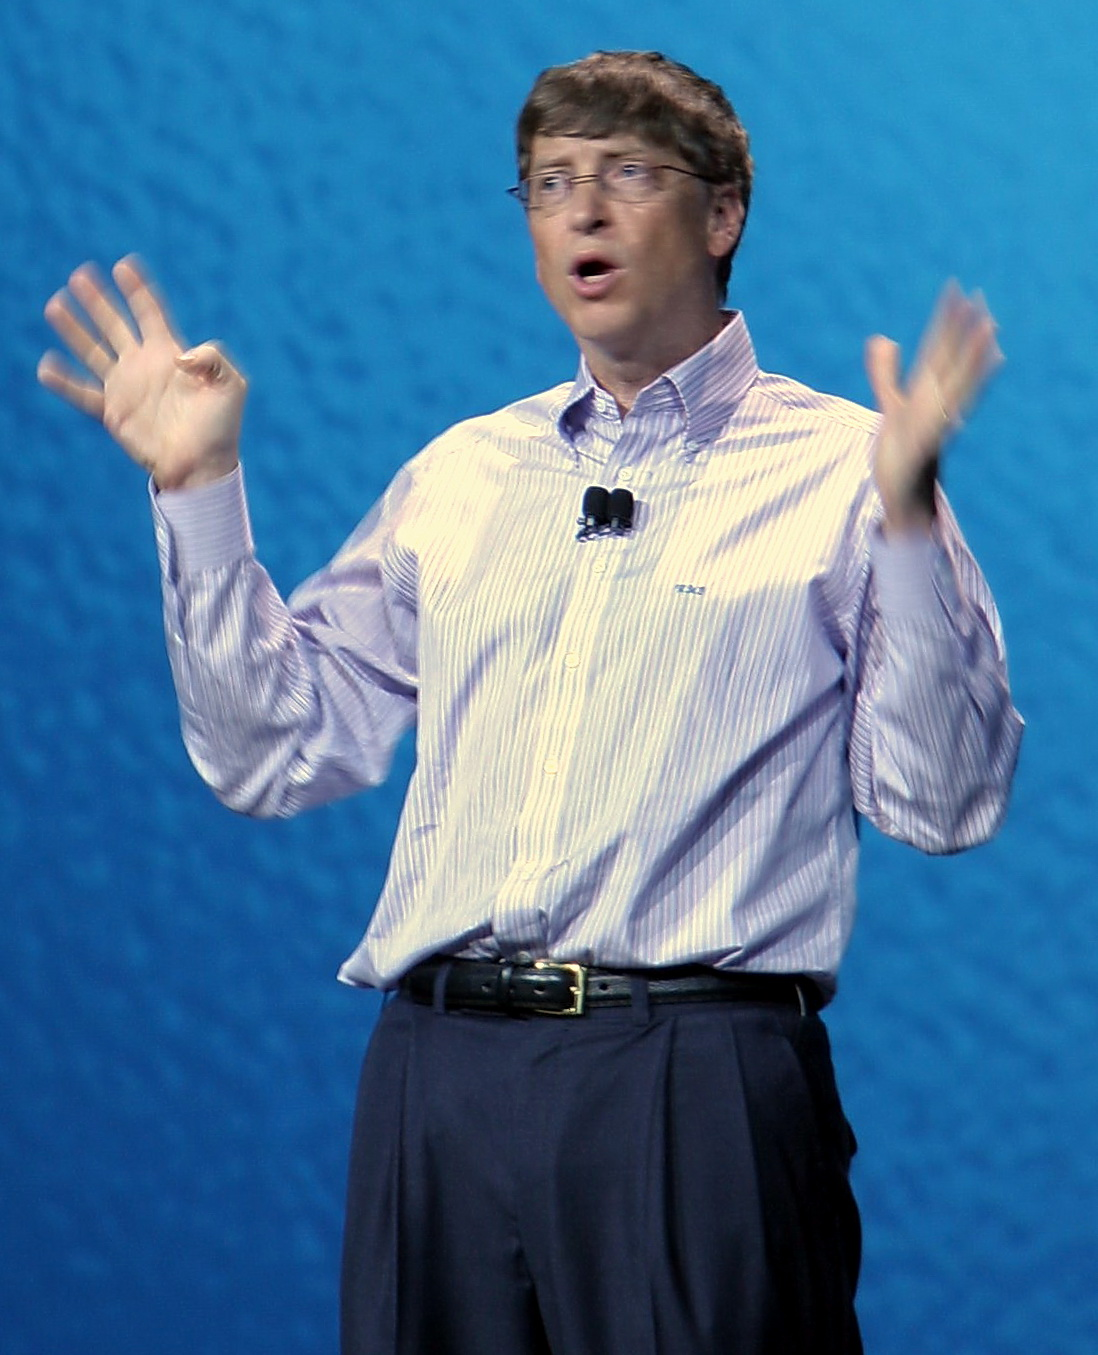 write an essay proposing a dress code in your workplace writework bill gates in business casual attire